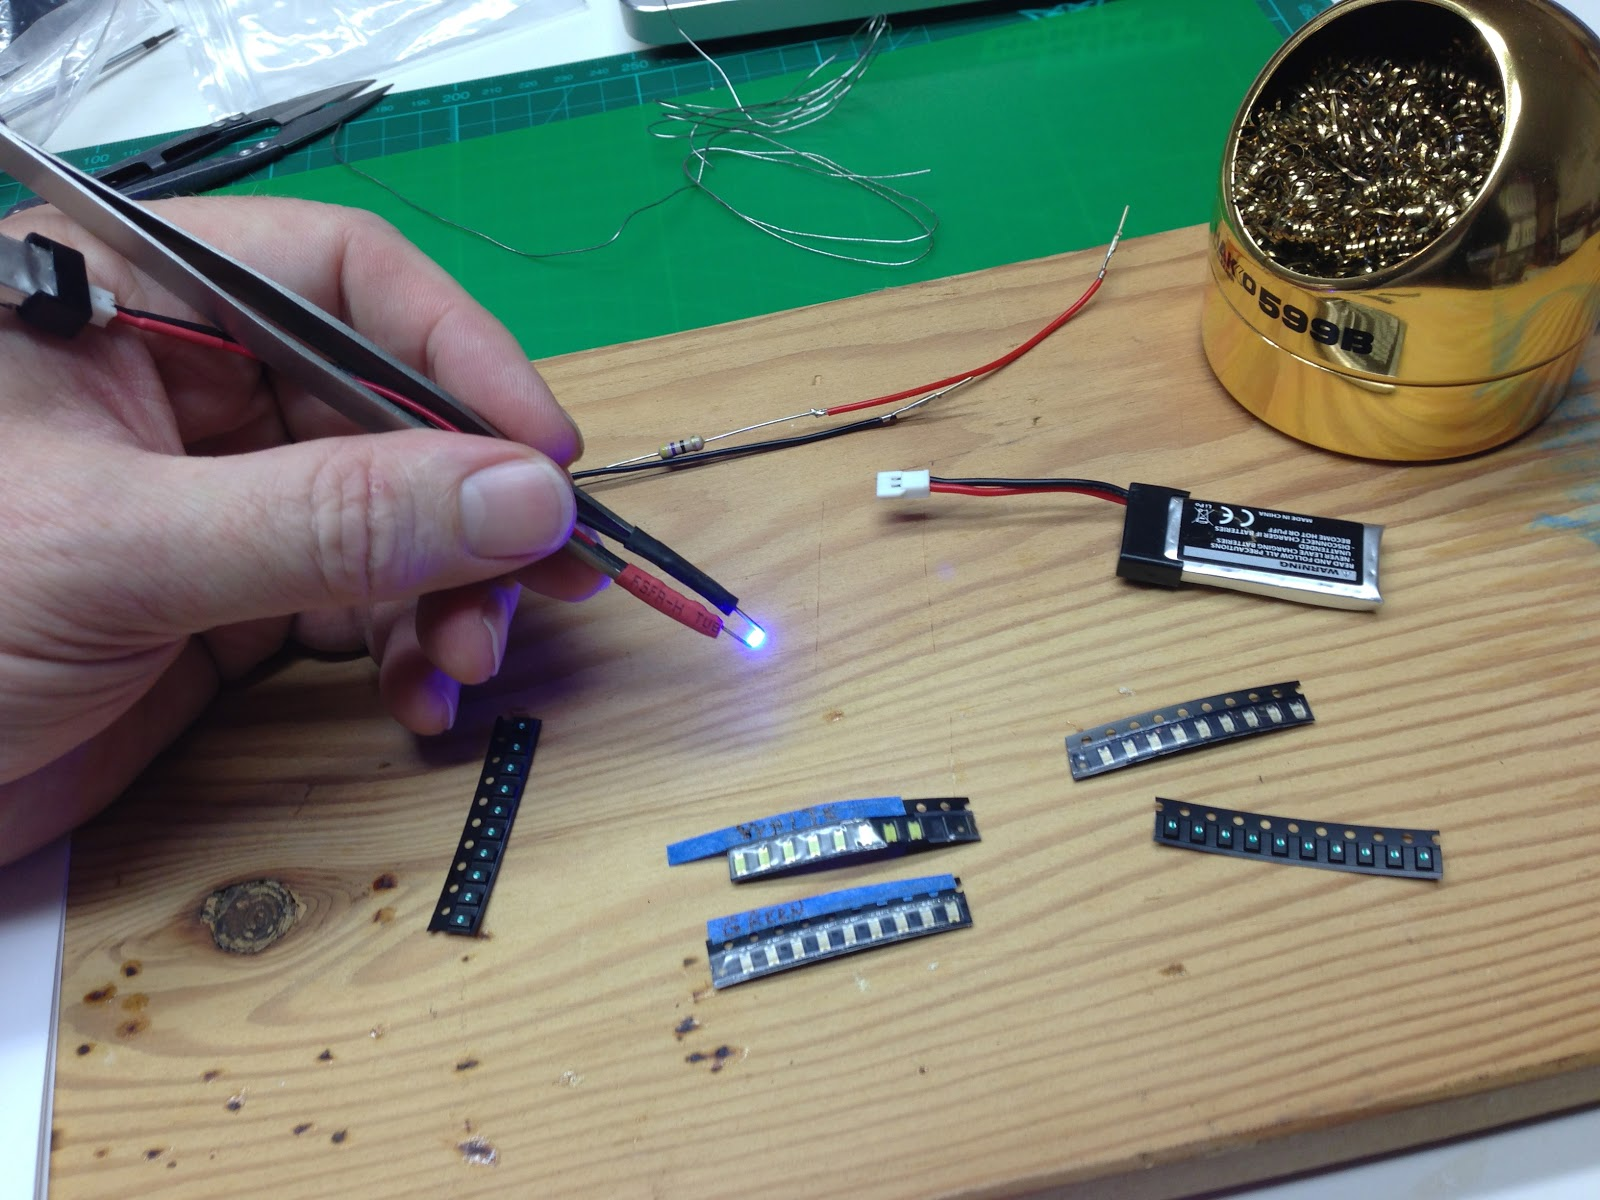 Simple Smd Led Tester